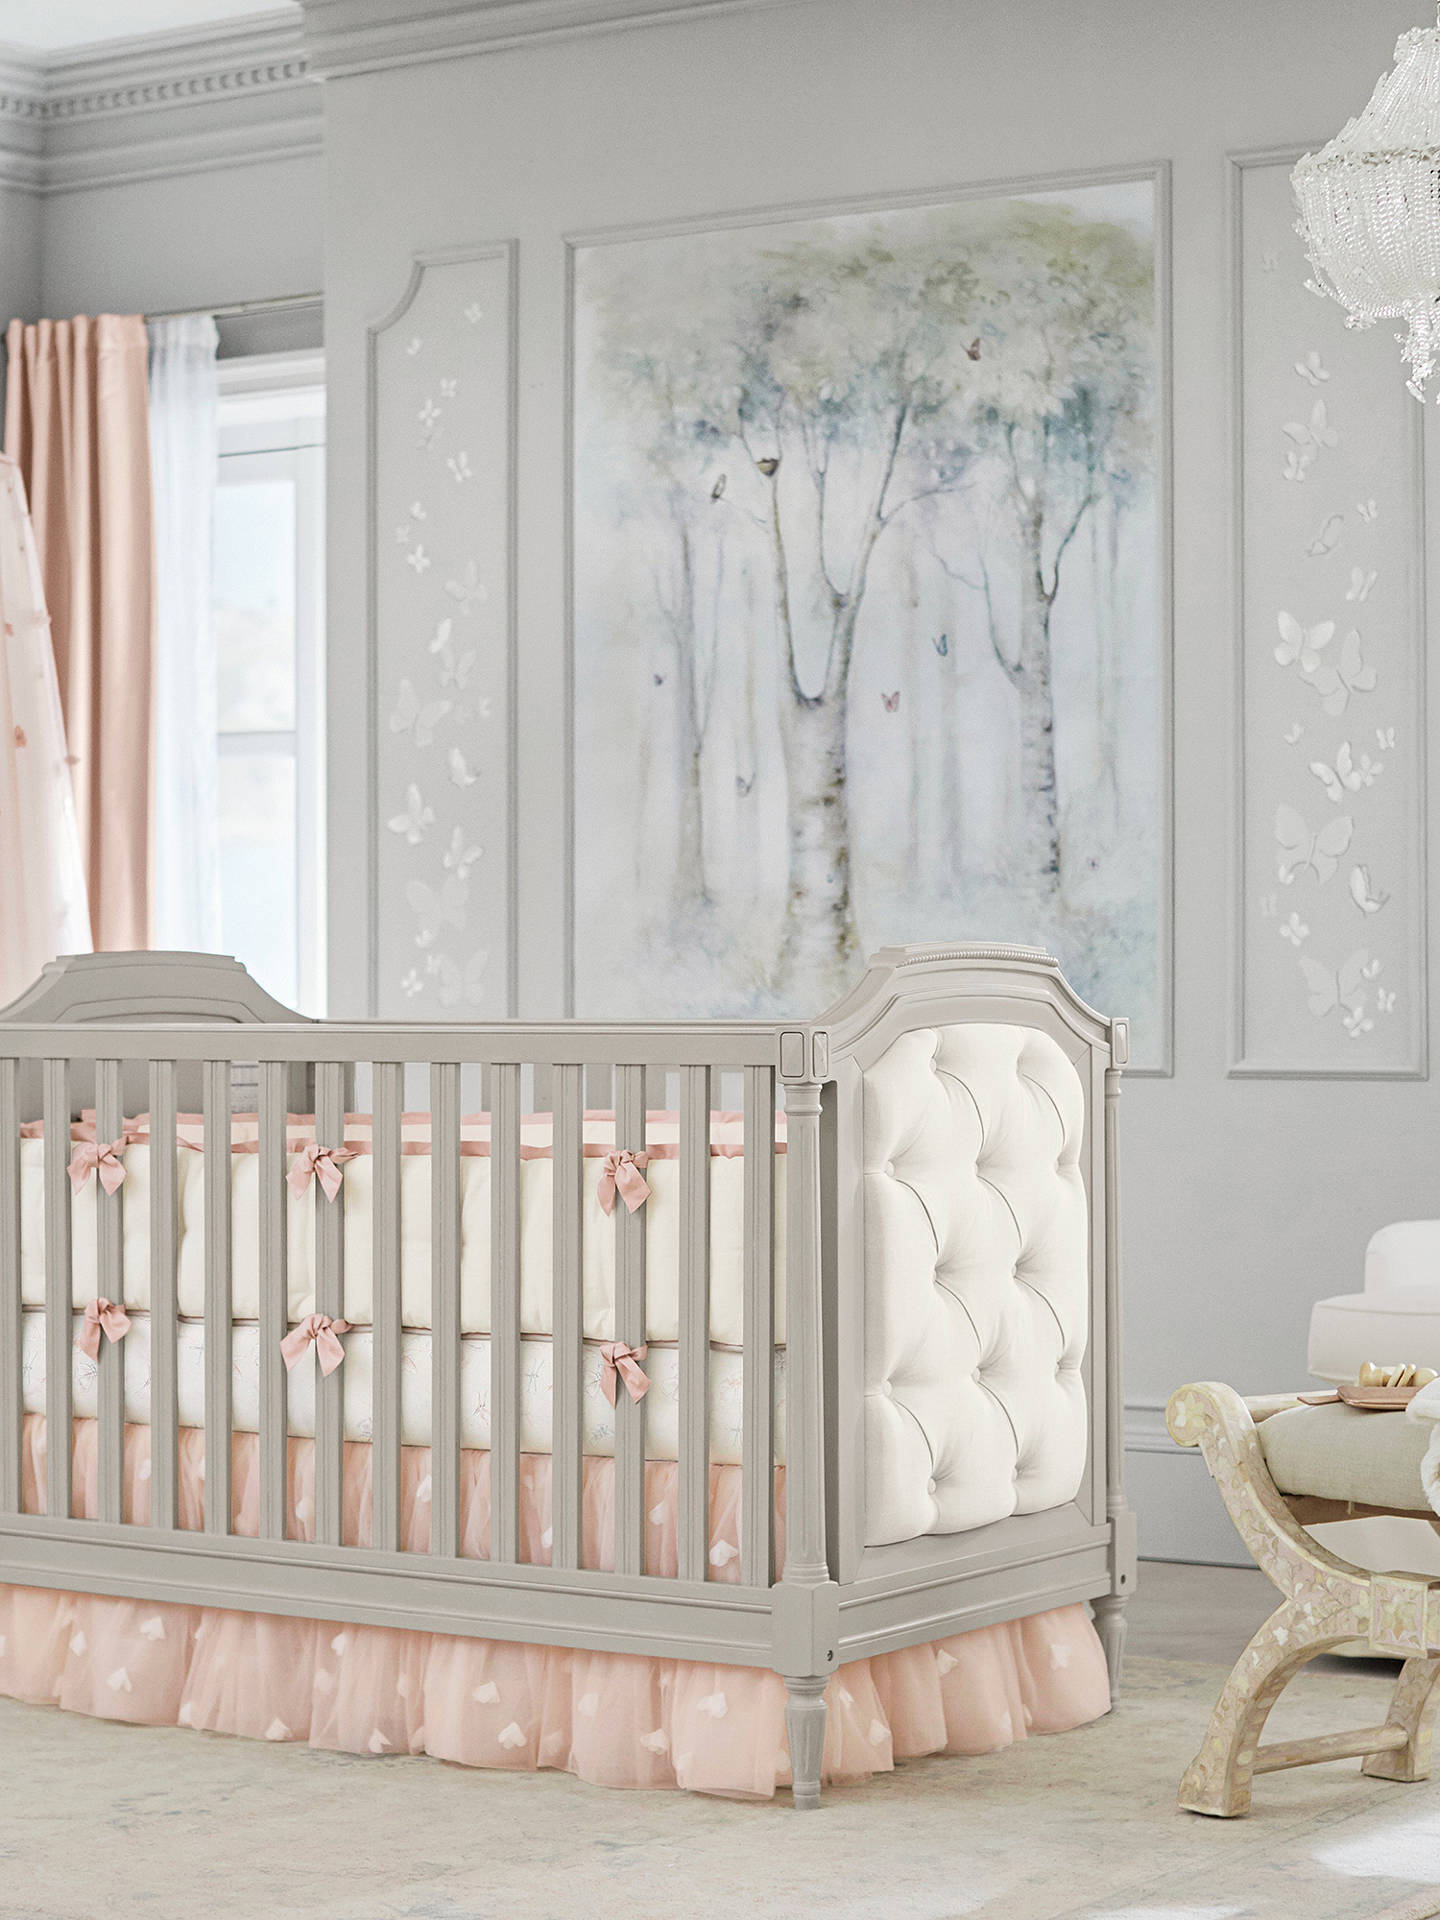 BuyPottery Barn Kids Monique Lhuillier Tulle Butterfly Crib Skirt, Blush Pink Online at johnlewis.com